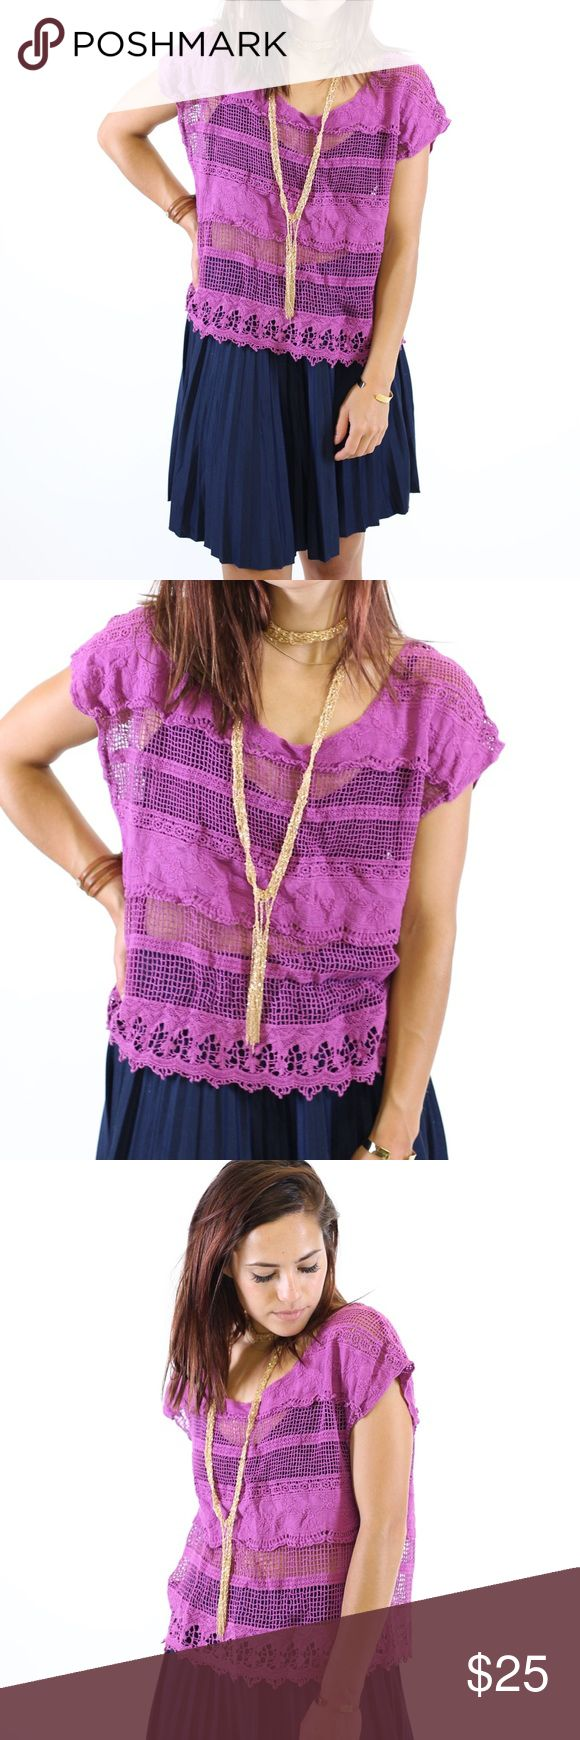 Anthropologie    Purple Crochet Slouchy Top Shop for a cause! All proceeds from the sale of this item are being donated to a non-profit organization that supports and rehabilitates women caught in sex trafficking. To learn more check out www.wipeeverytear.org.  Crochet lace top in Fuschia by Kirra for Anthropologie. Semi sheer, could be worn with bralette or a Cami. So cute. Good condition, true to size. Anthropologie Tops Blouses